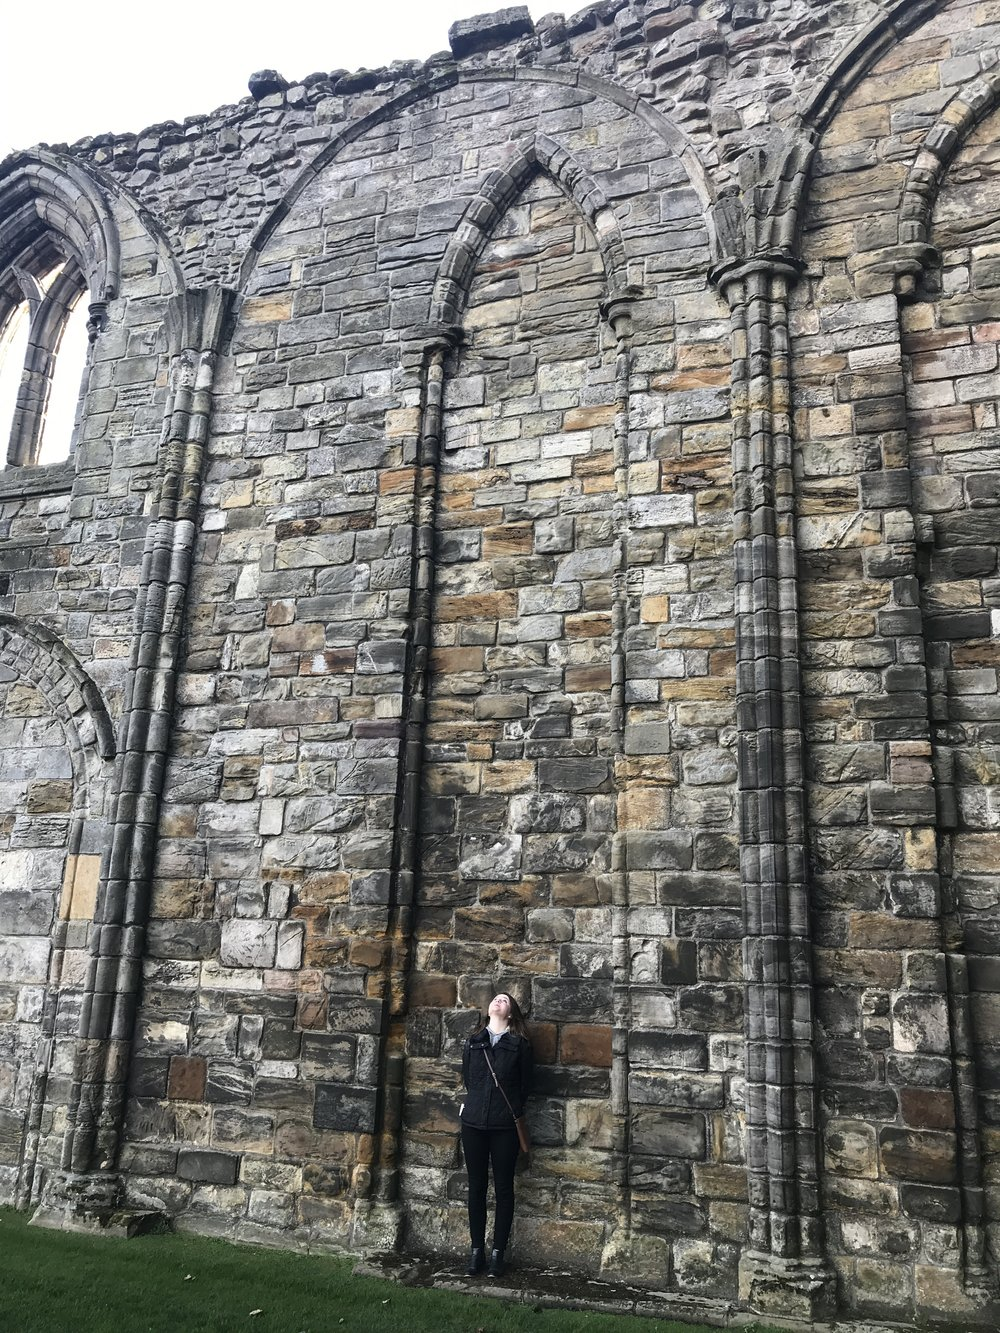 Thousands and thousands of people worshipped in this place. The people of the town were riled up to tear down the old cathedral where pilgrimages had been made for hundreds of years. The enormity of the building is almost beyond my imagination.